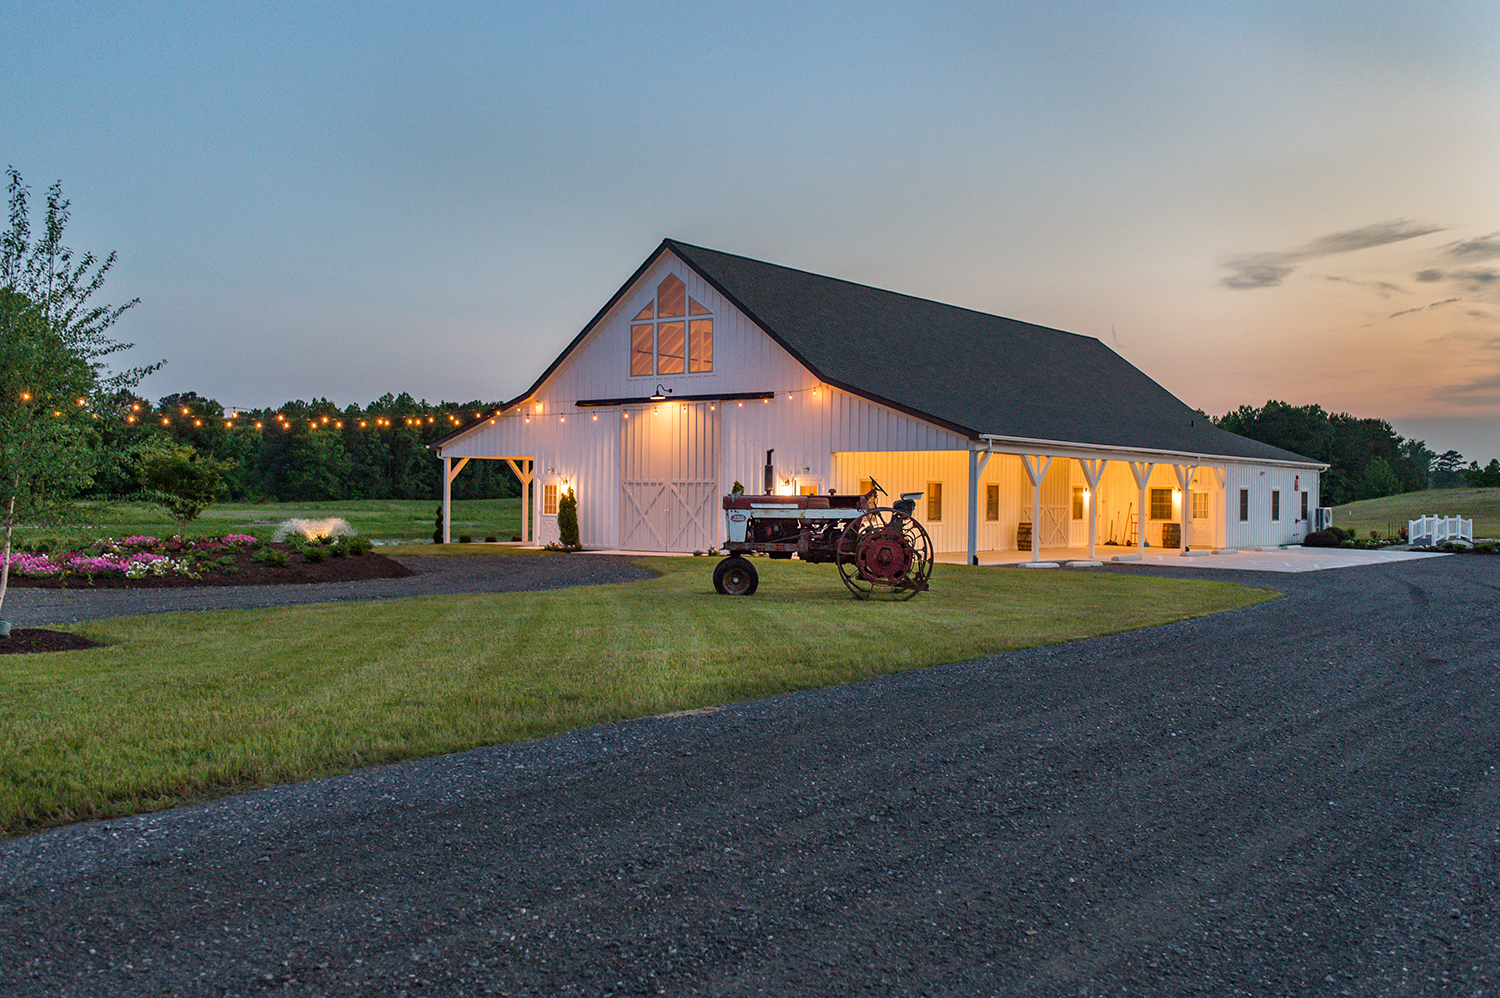 Home Barn Wedding Venue The Barn At Kyland Grove Eastern Shore